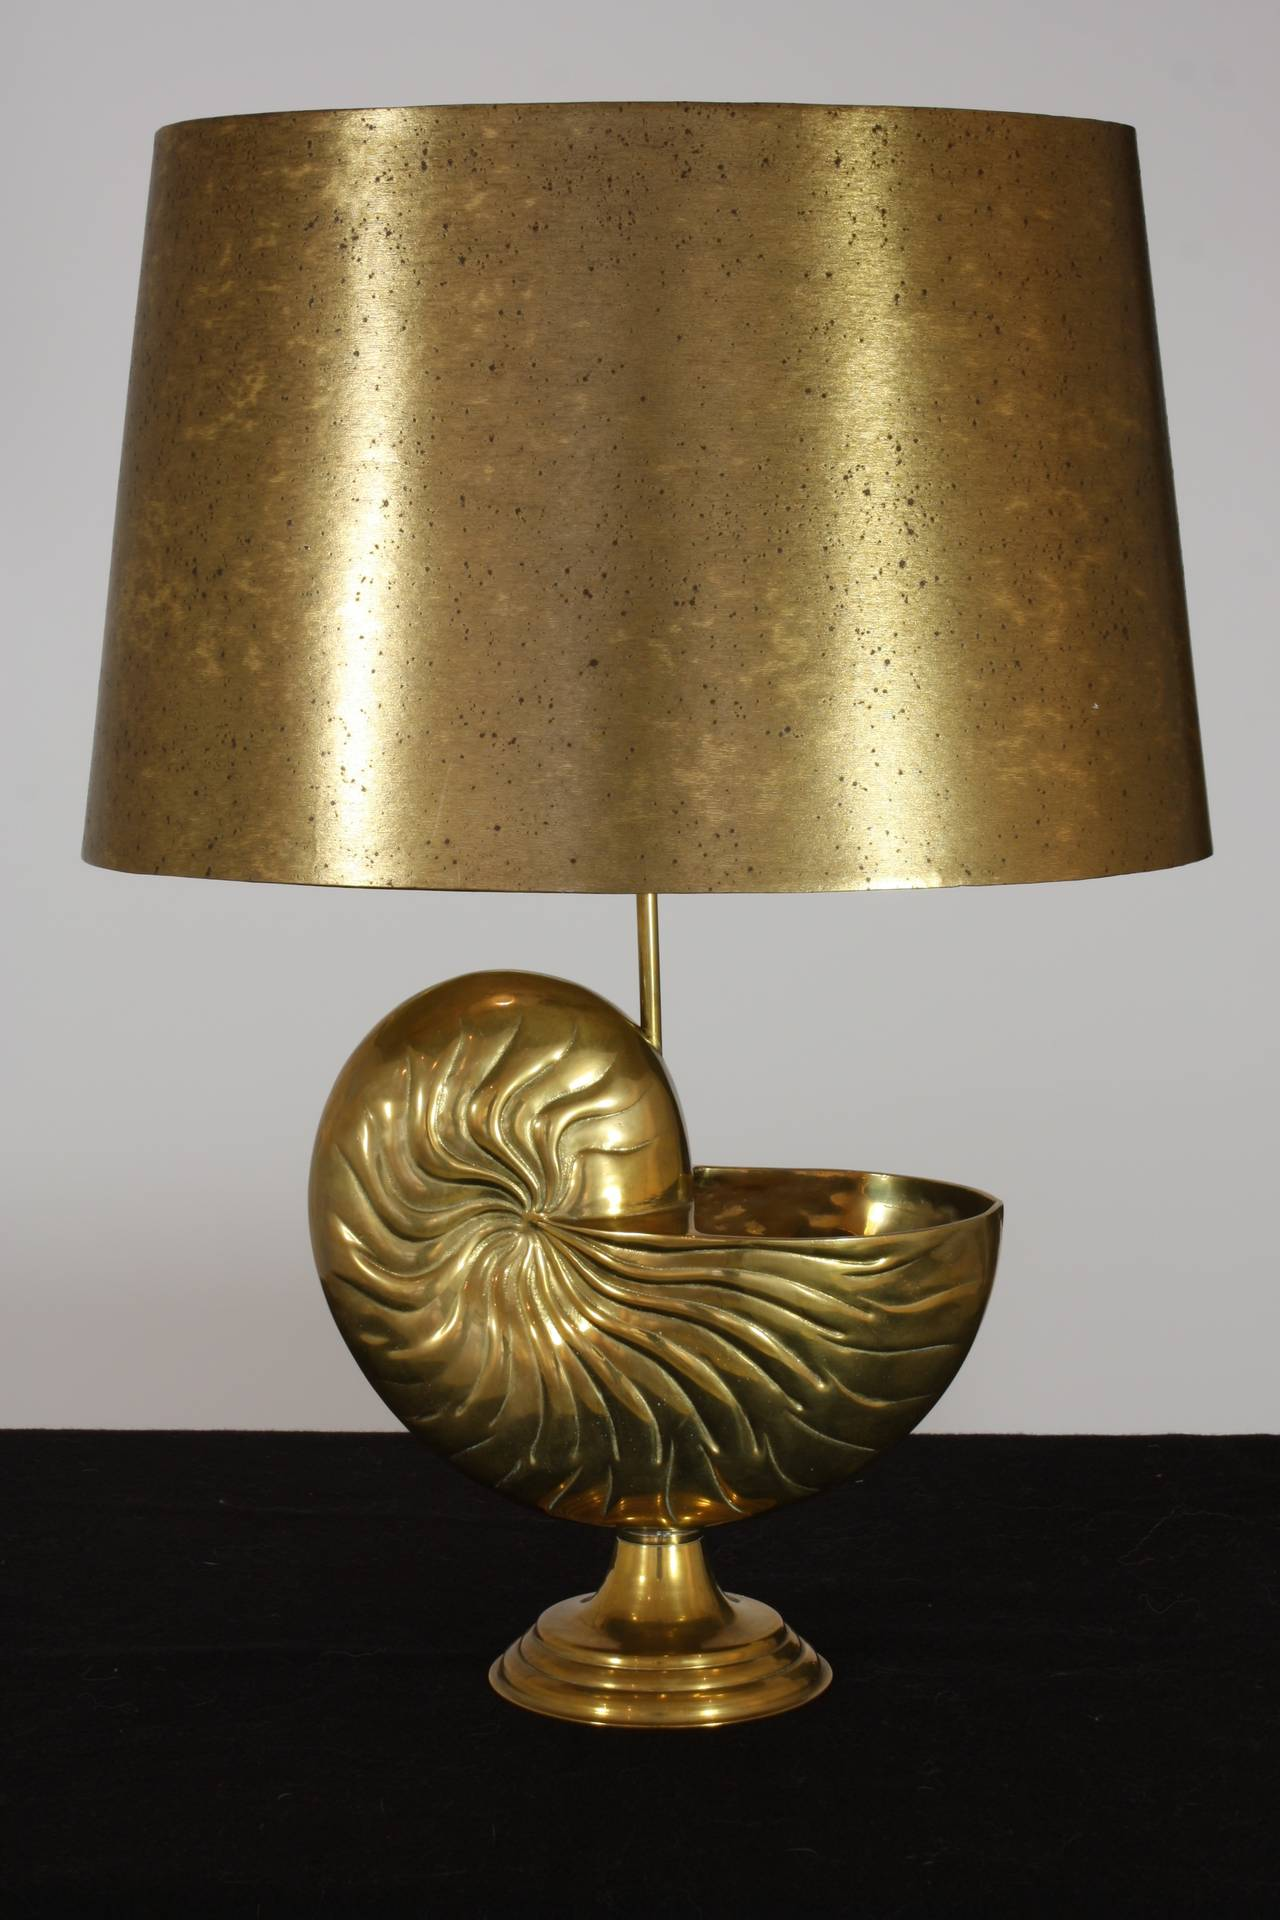 An unusual French bronze nautilus form table lamp with faux-brass paper shade (in the style of Maison Charles), mid-20th century. The lamp has been re-electrified for U.S.